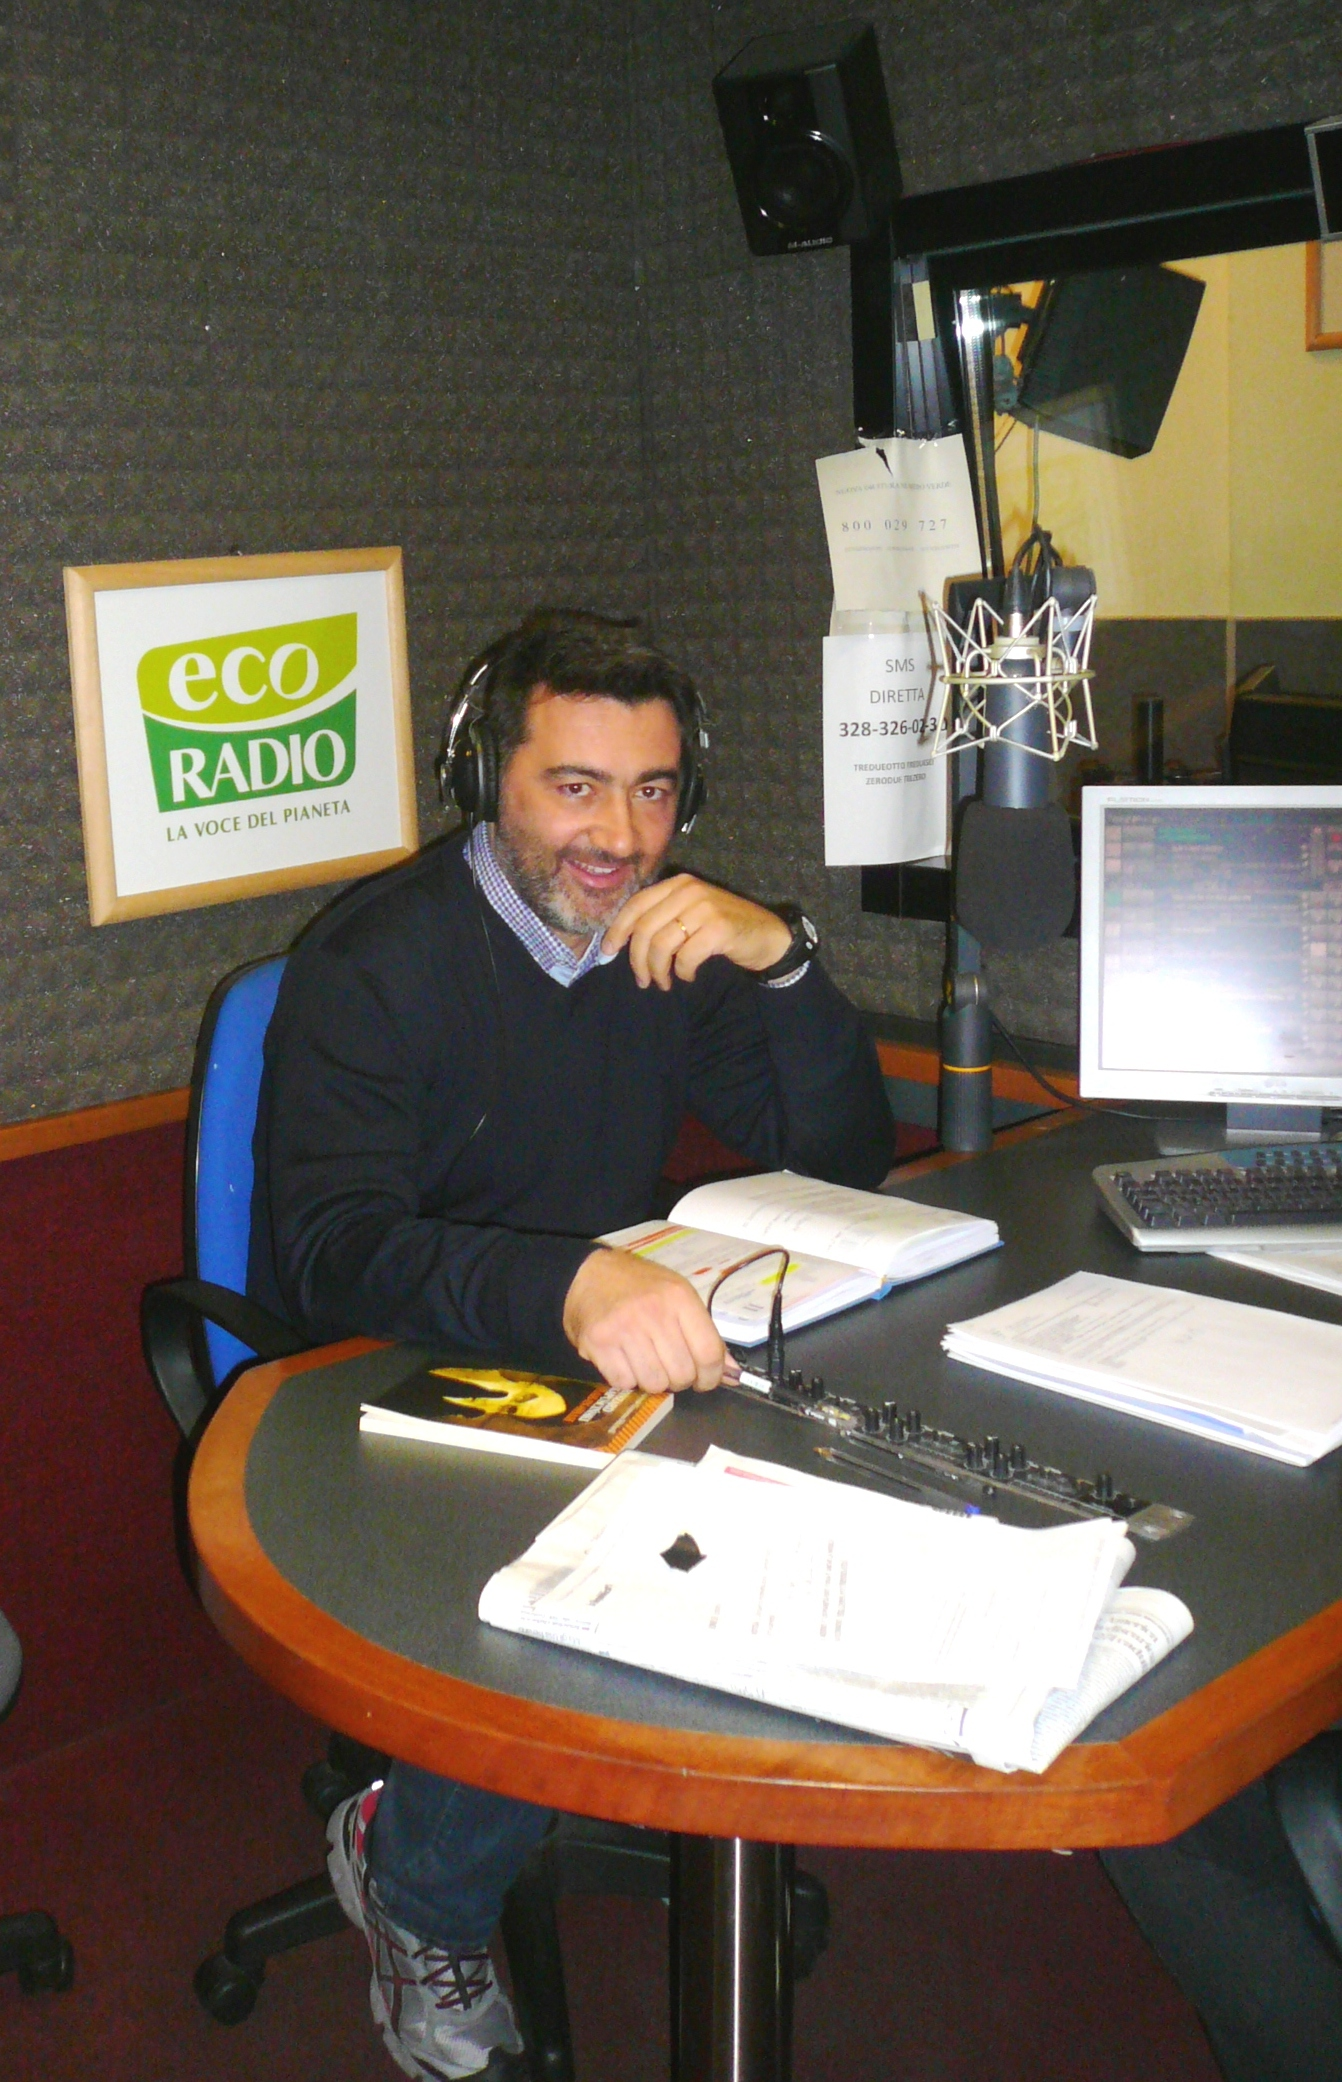 paolo merlini a Ecoradio